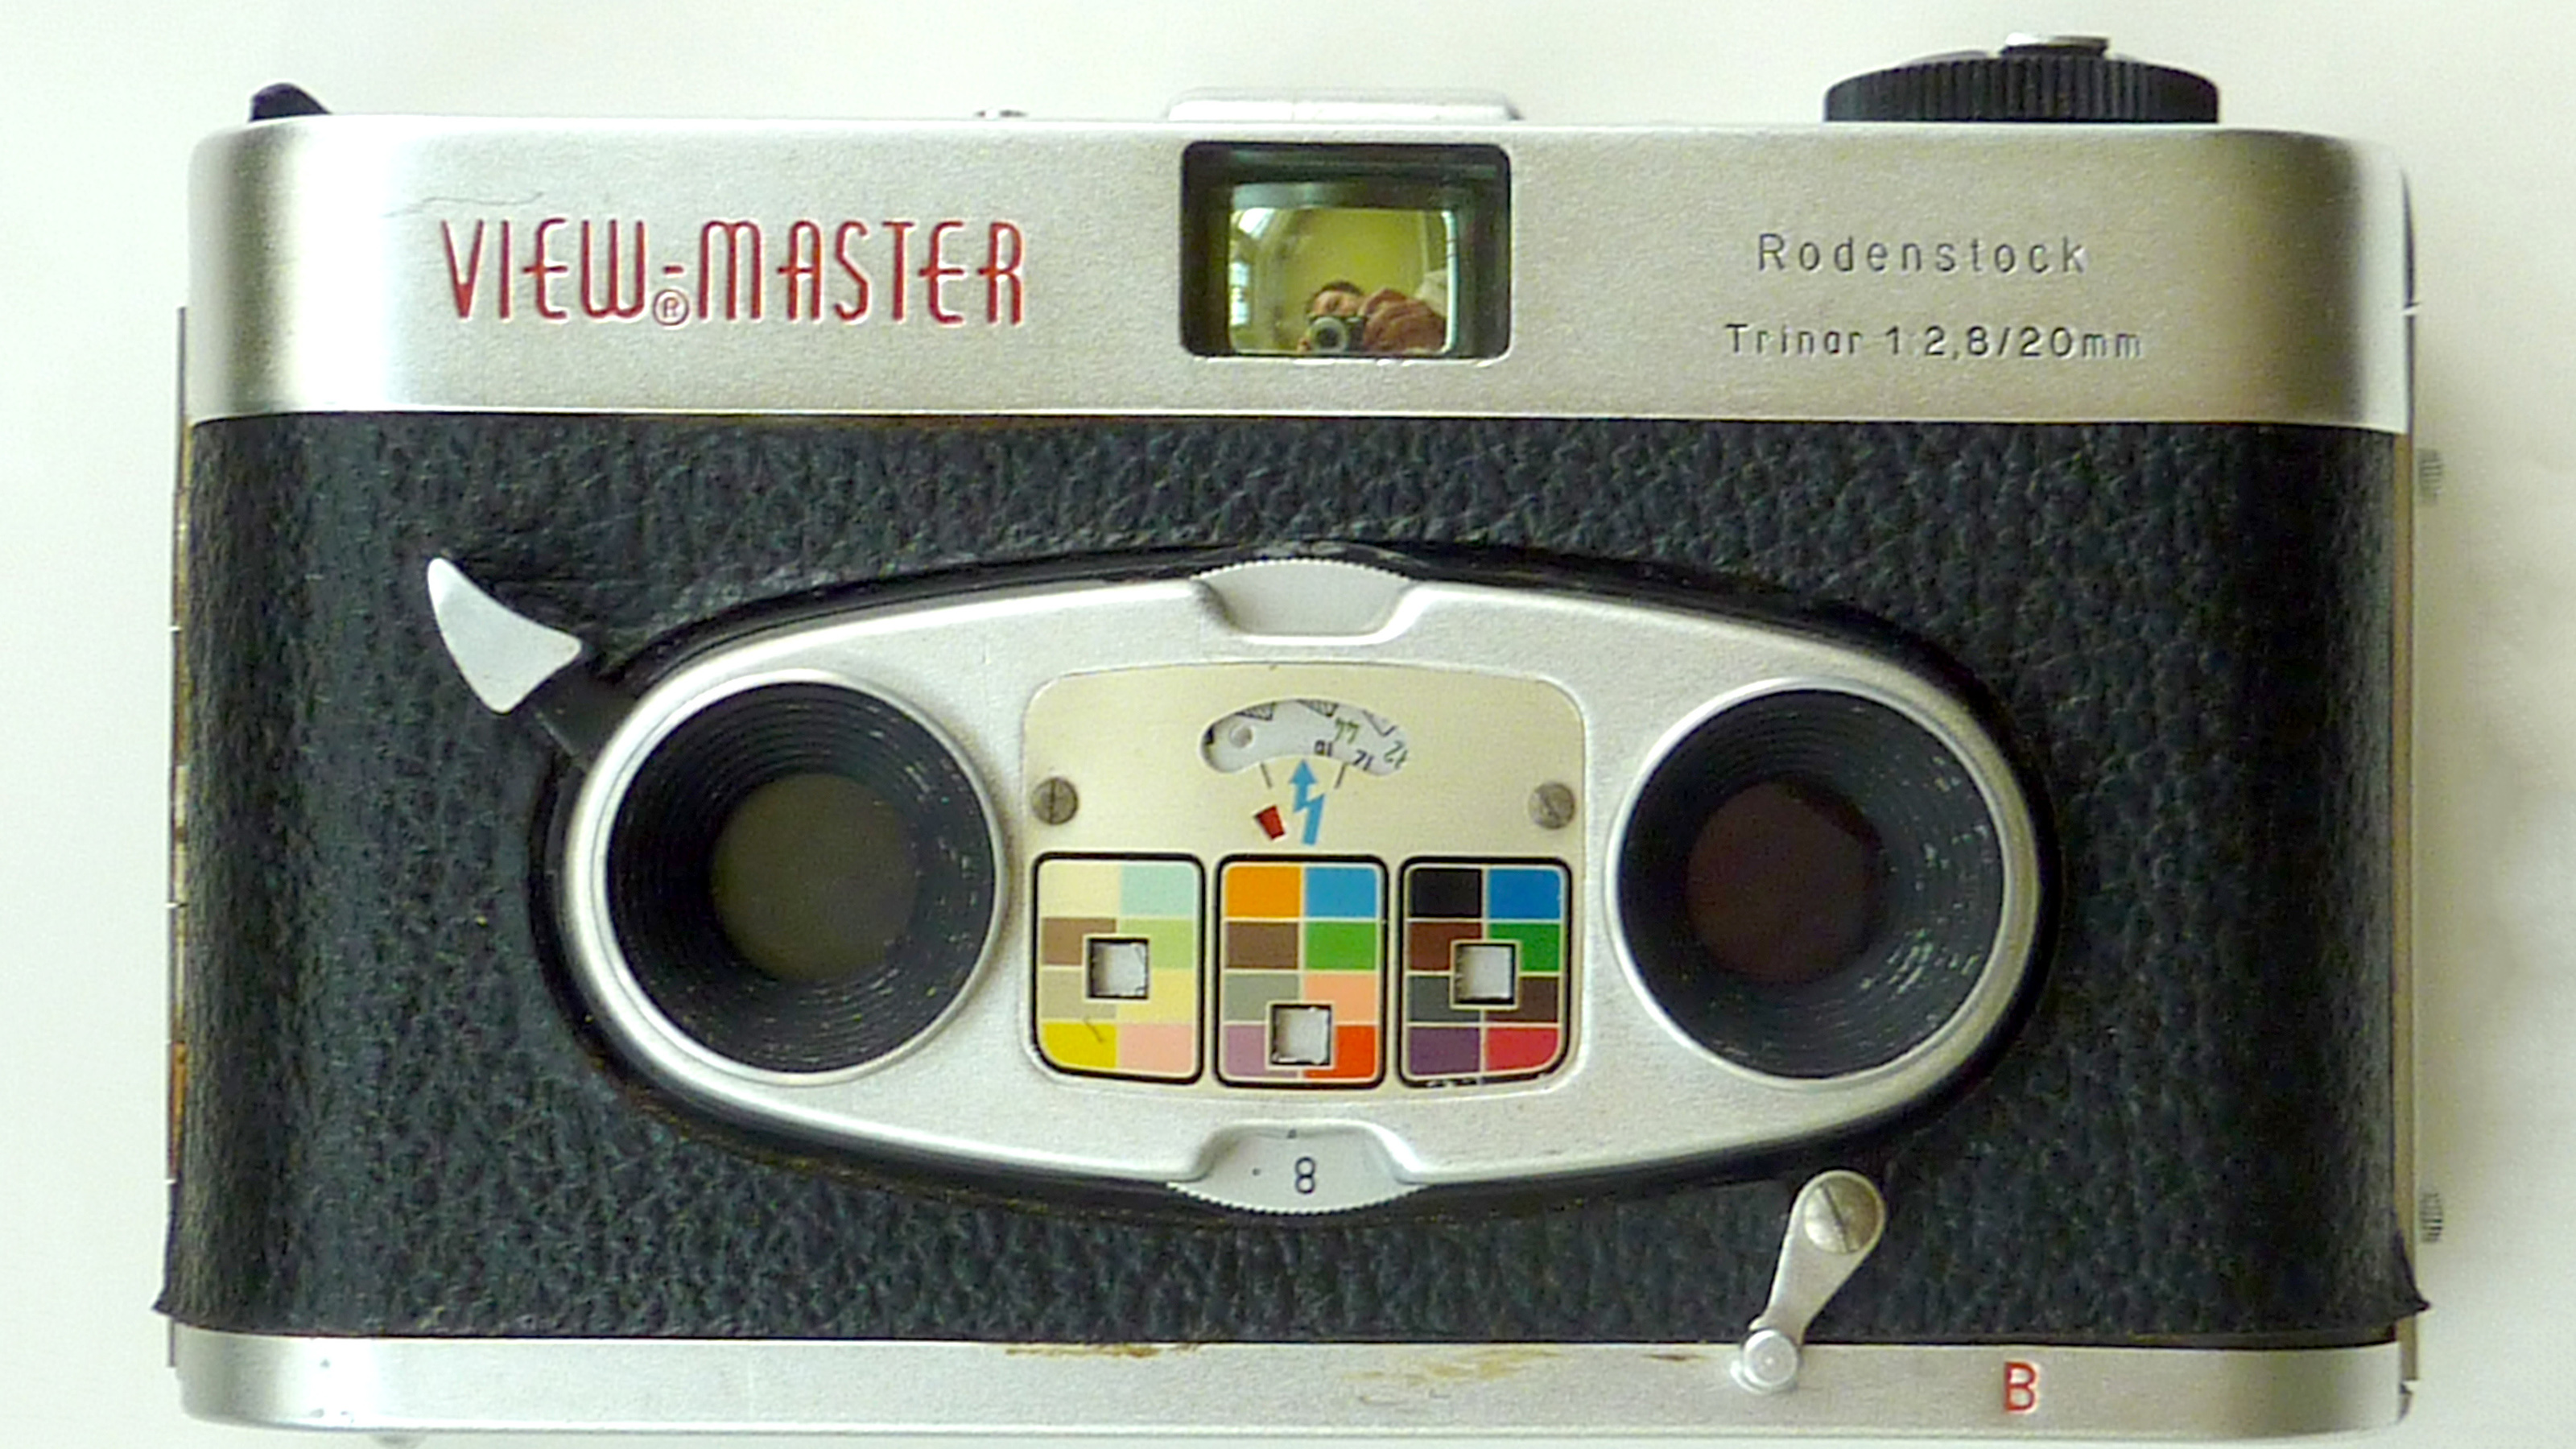 The front of the Viewmaster Stereo camera